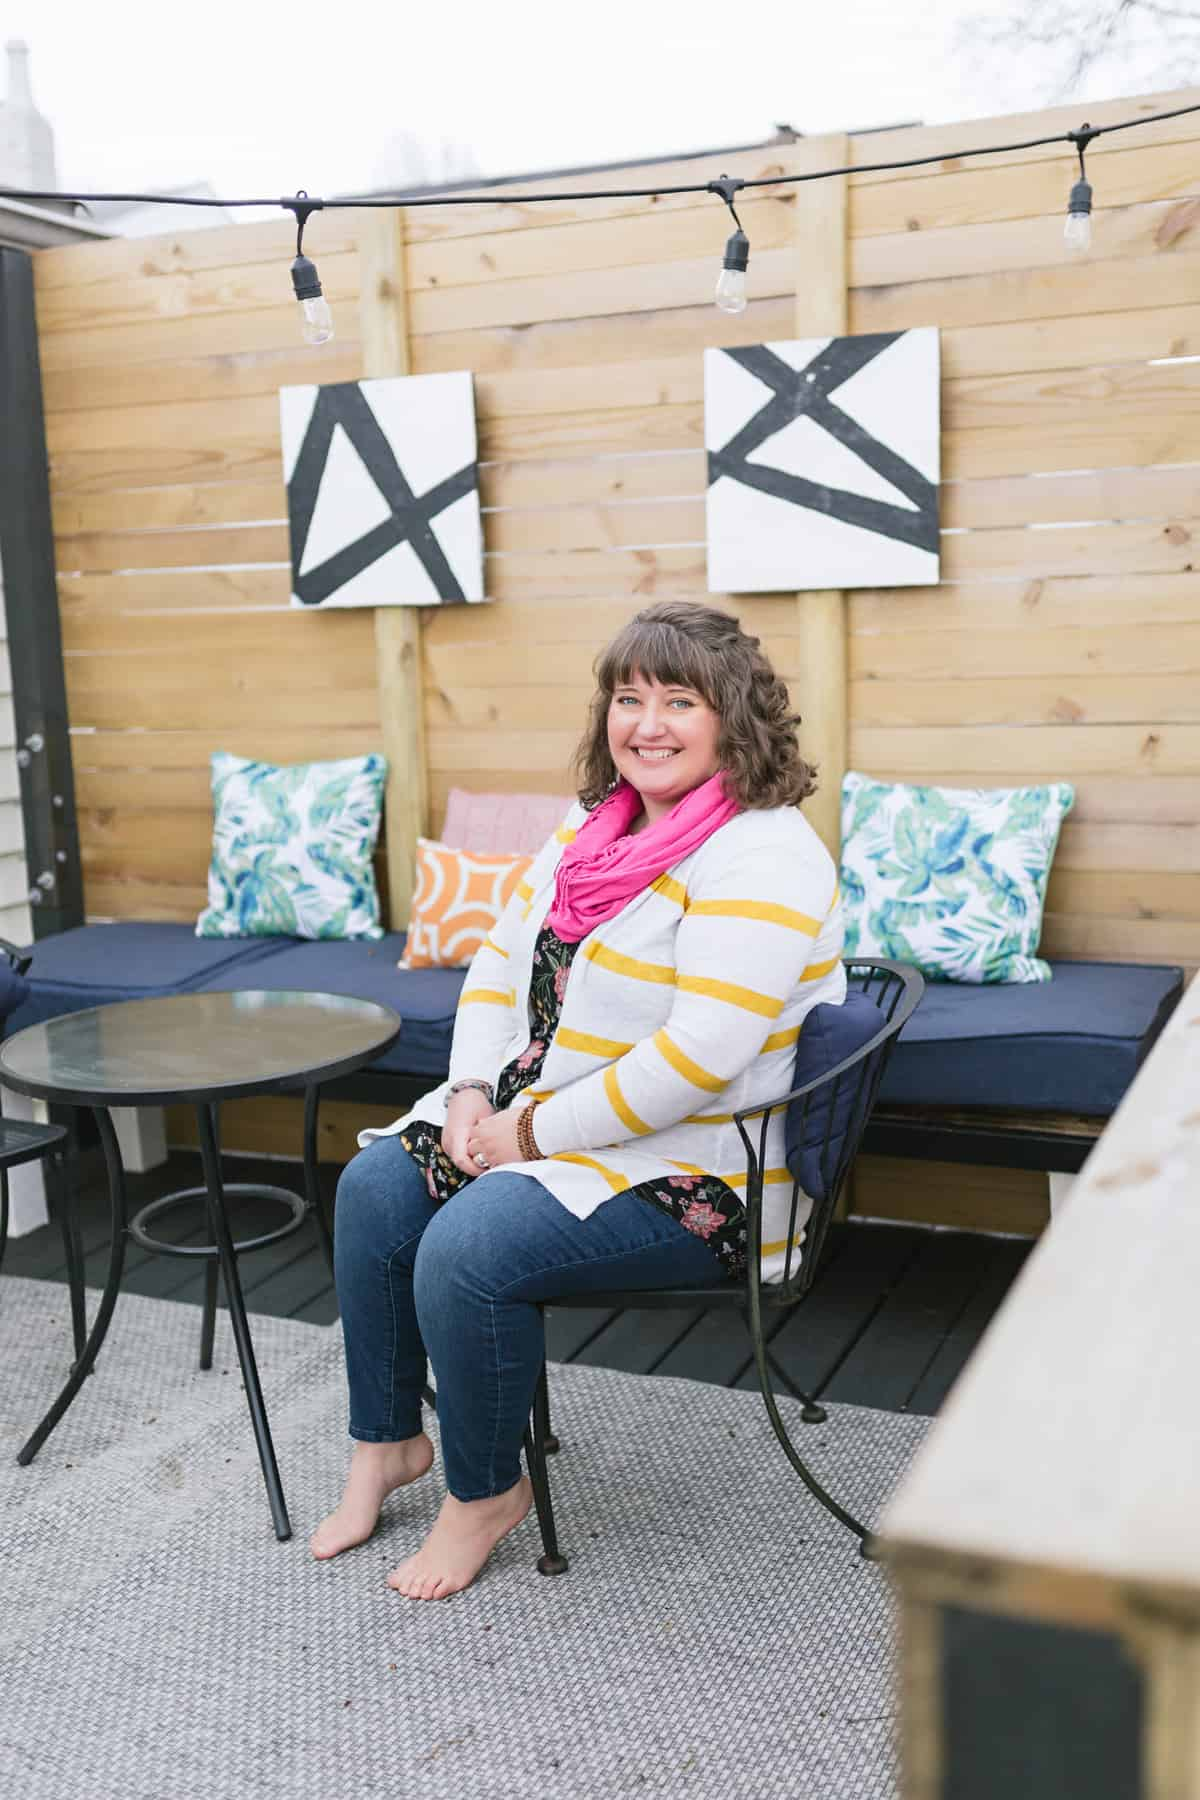 Brunette woman in a pink scarf and striped cardigan, sitting on a patio and smiling.